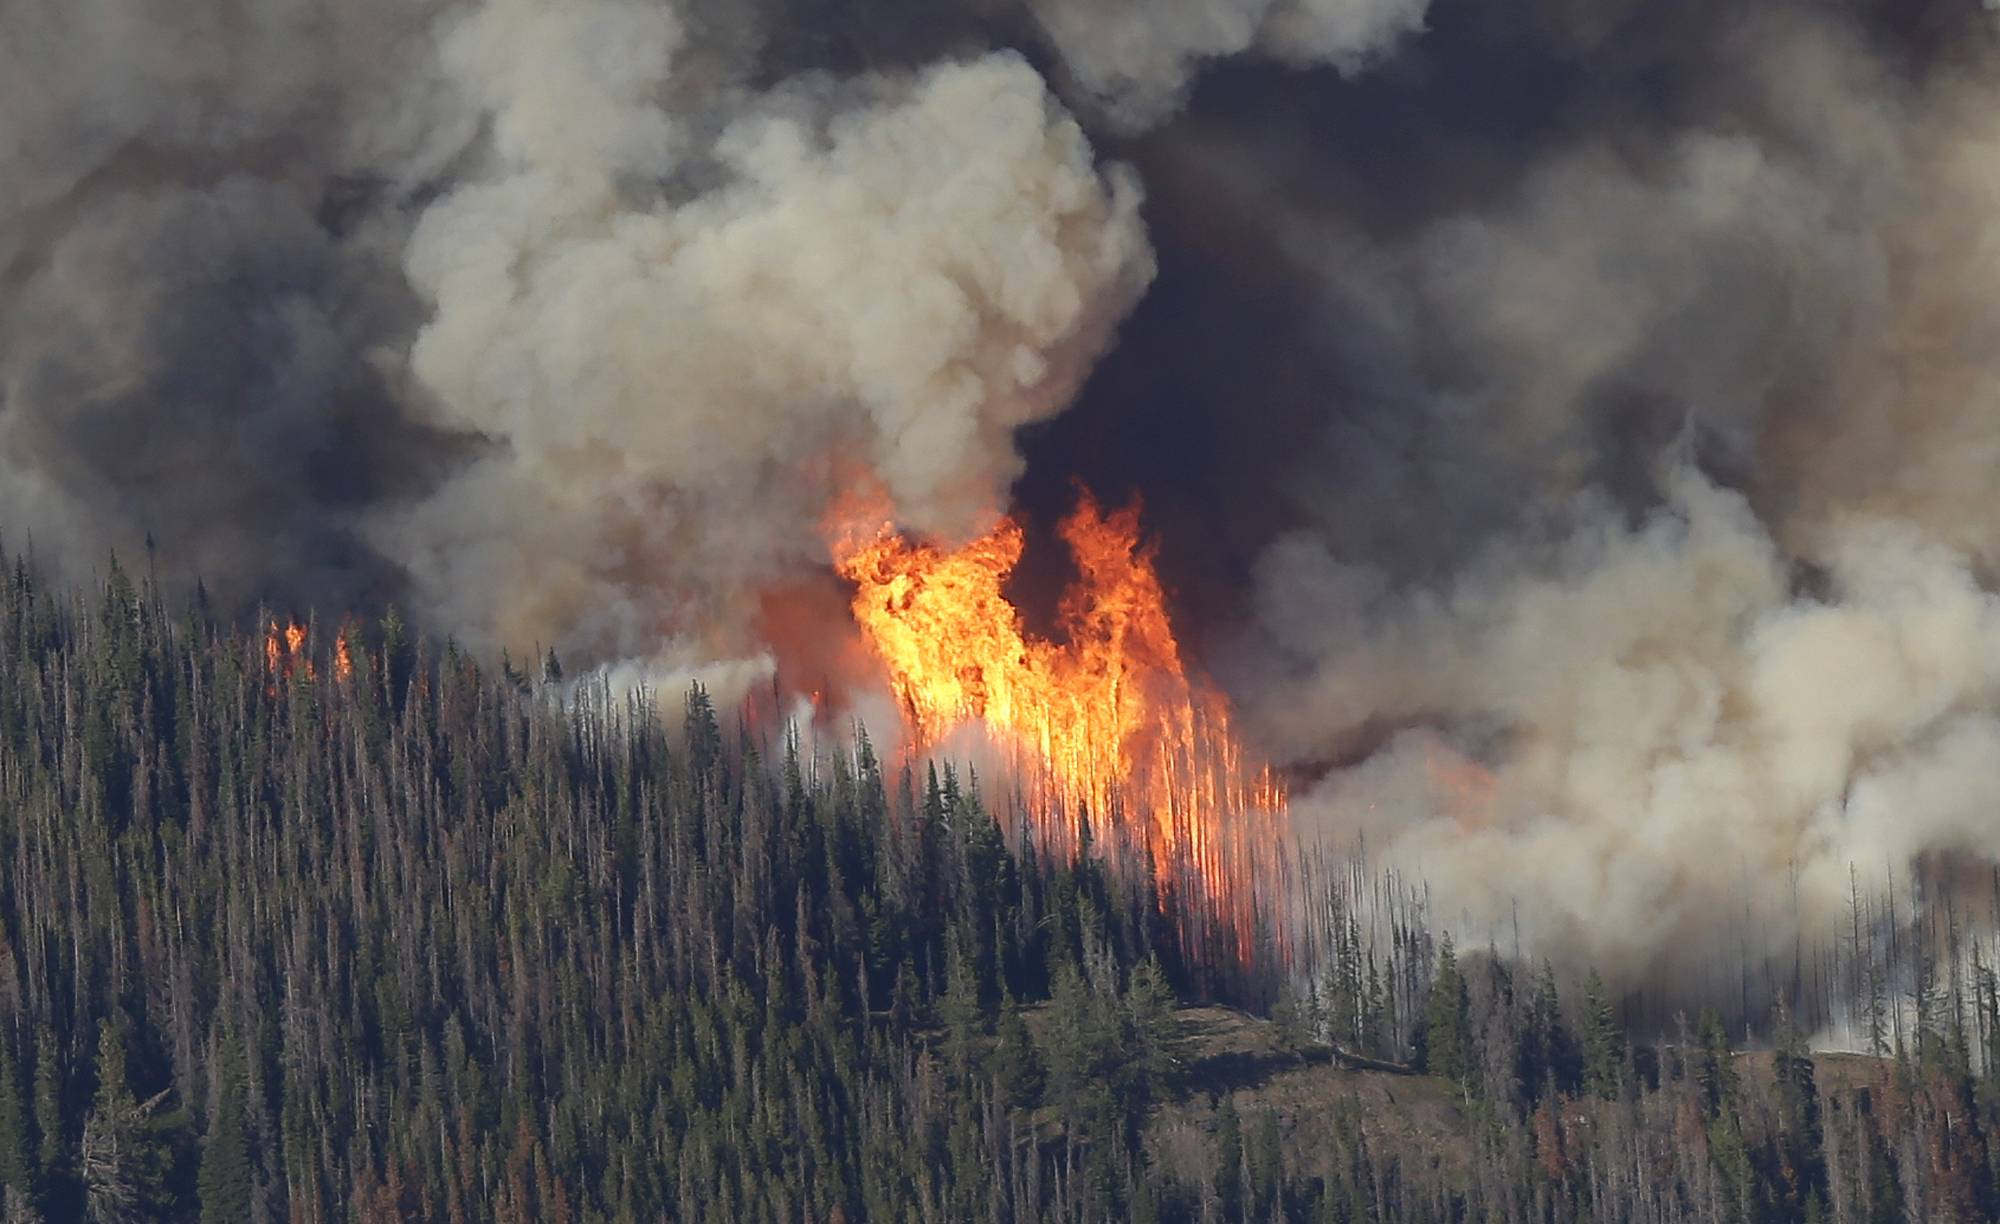 Flames burn trees in the Chiwaukum Creek Fire as seen from the air near Leavenworth, Wash., Thursday. The blaze closed a section of U.S. Highway 2, and resulted in the evacuation of nearly 900 homes.